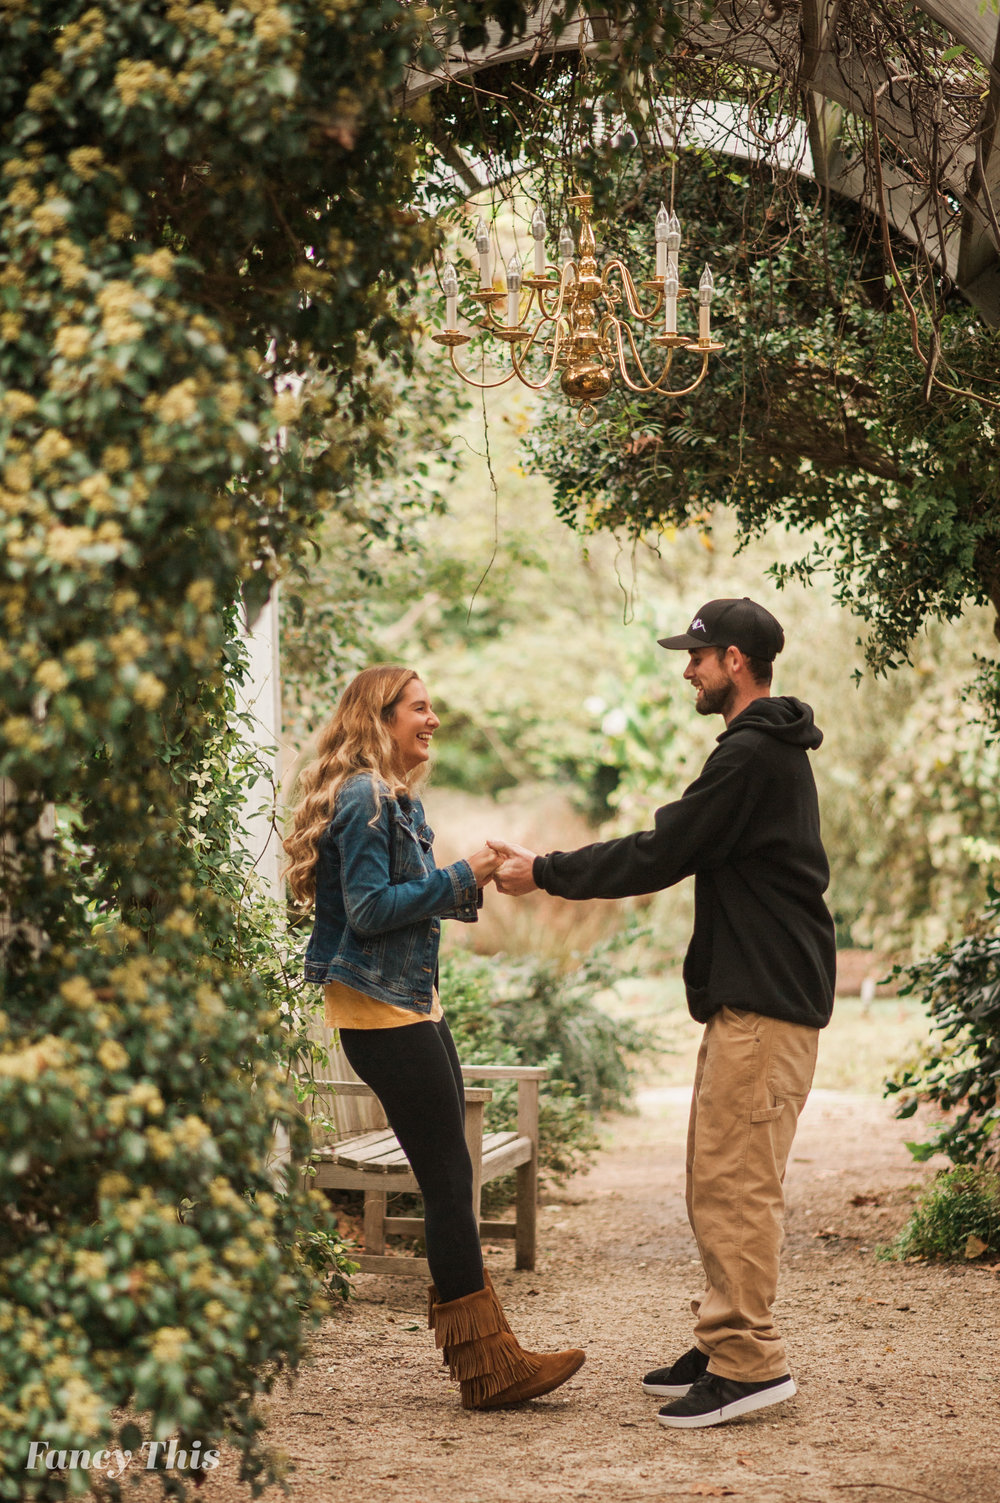 mikeandkelly_engaged_fancythis-1.jpg